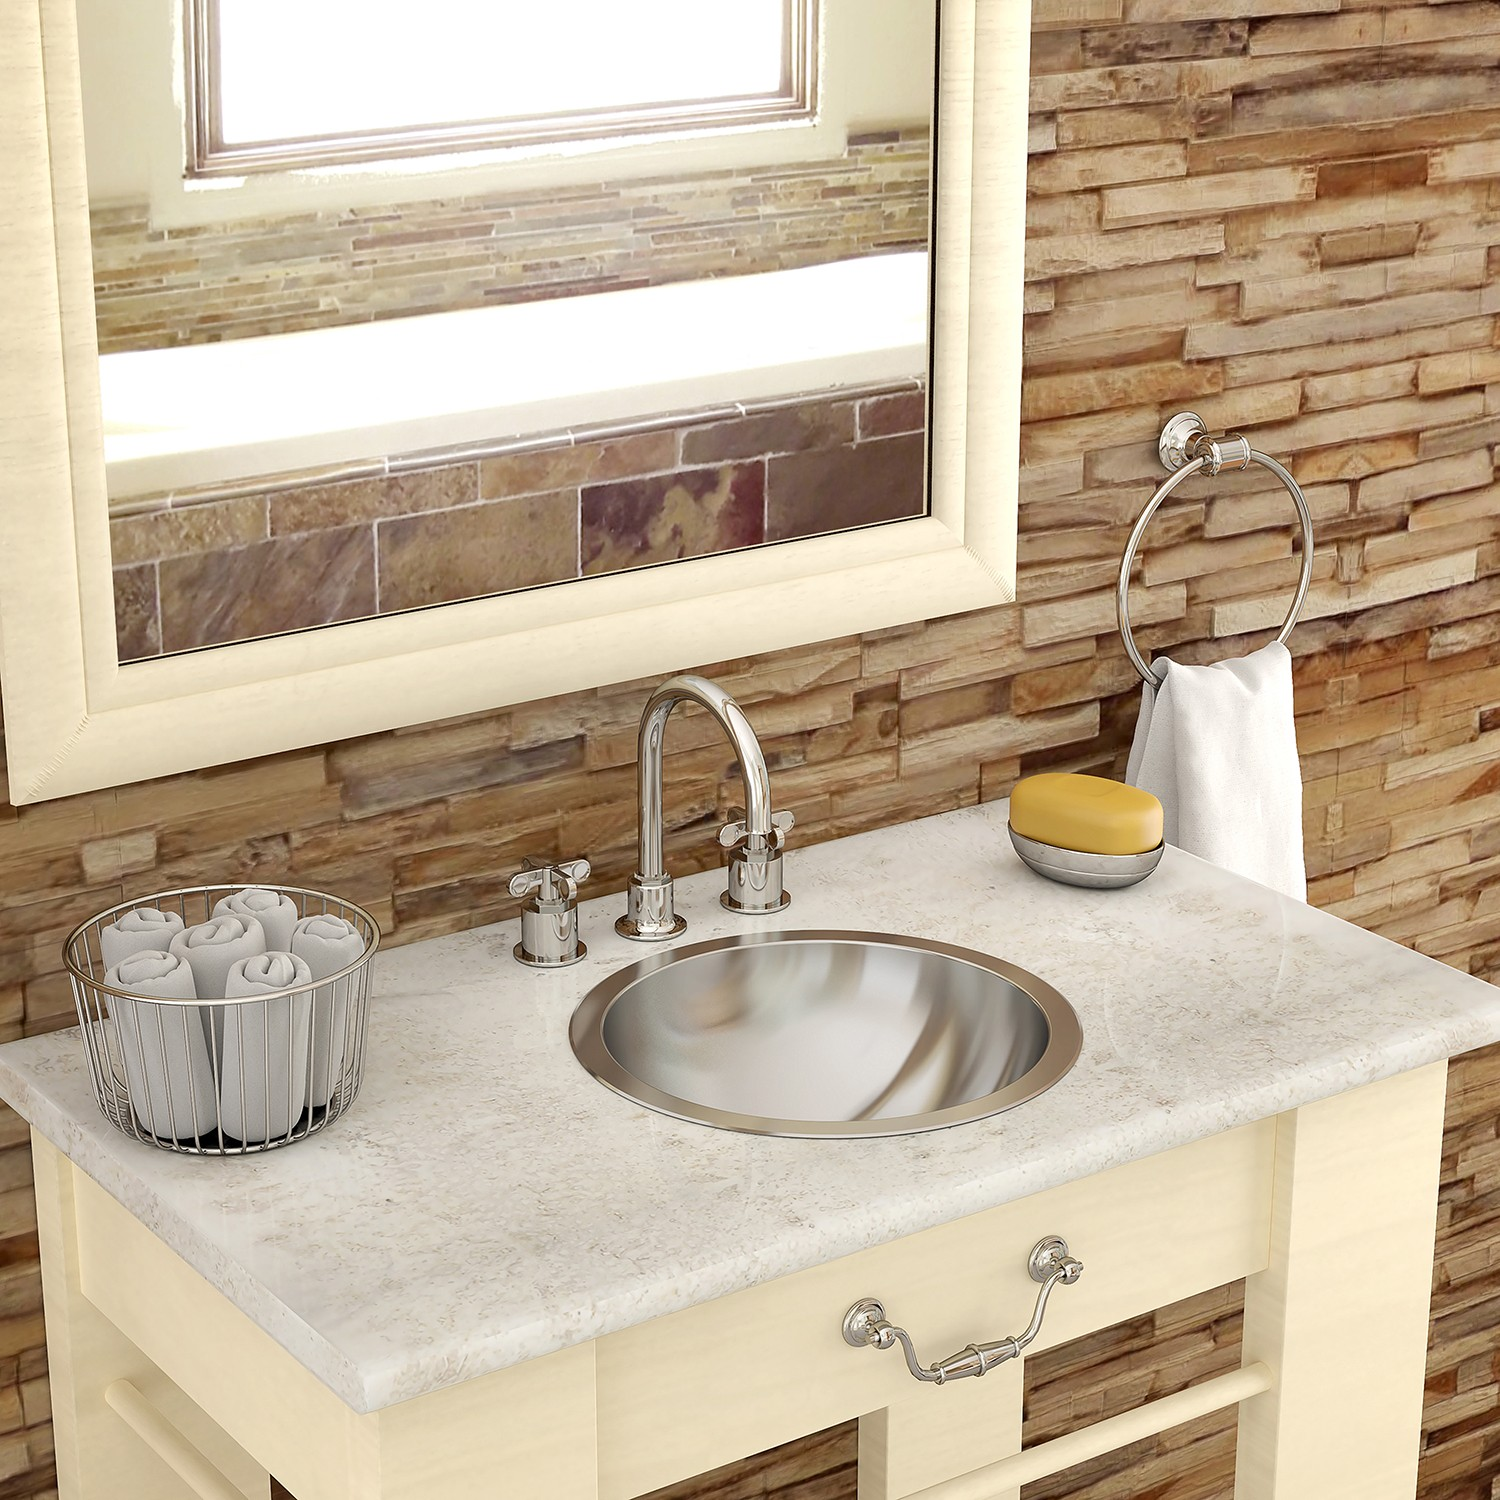 Teanna Simply Stainless Round Undermount or Drop-in Stainless Steel Sink